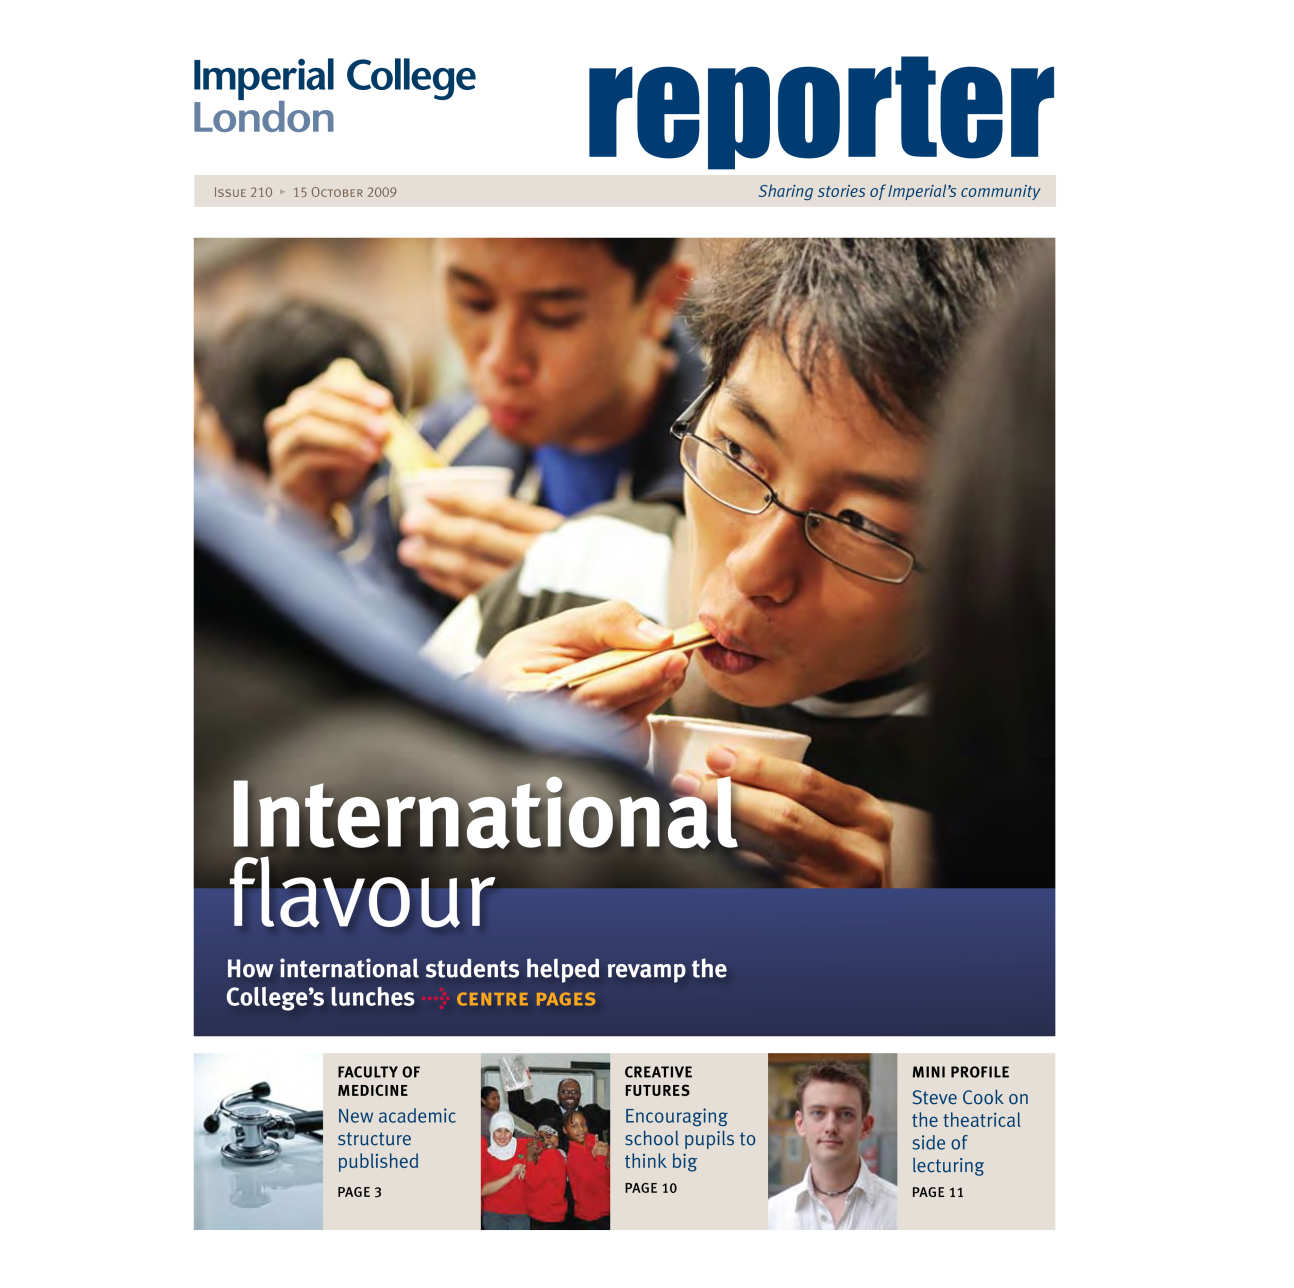 Issue 210 - 15 October 2009